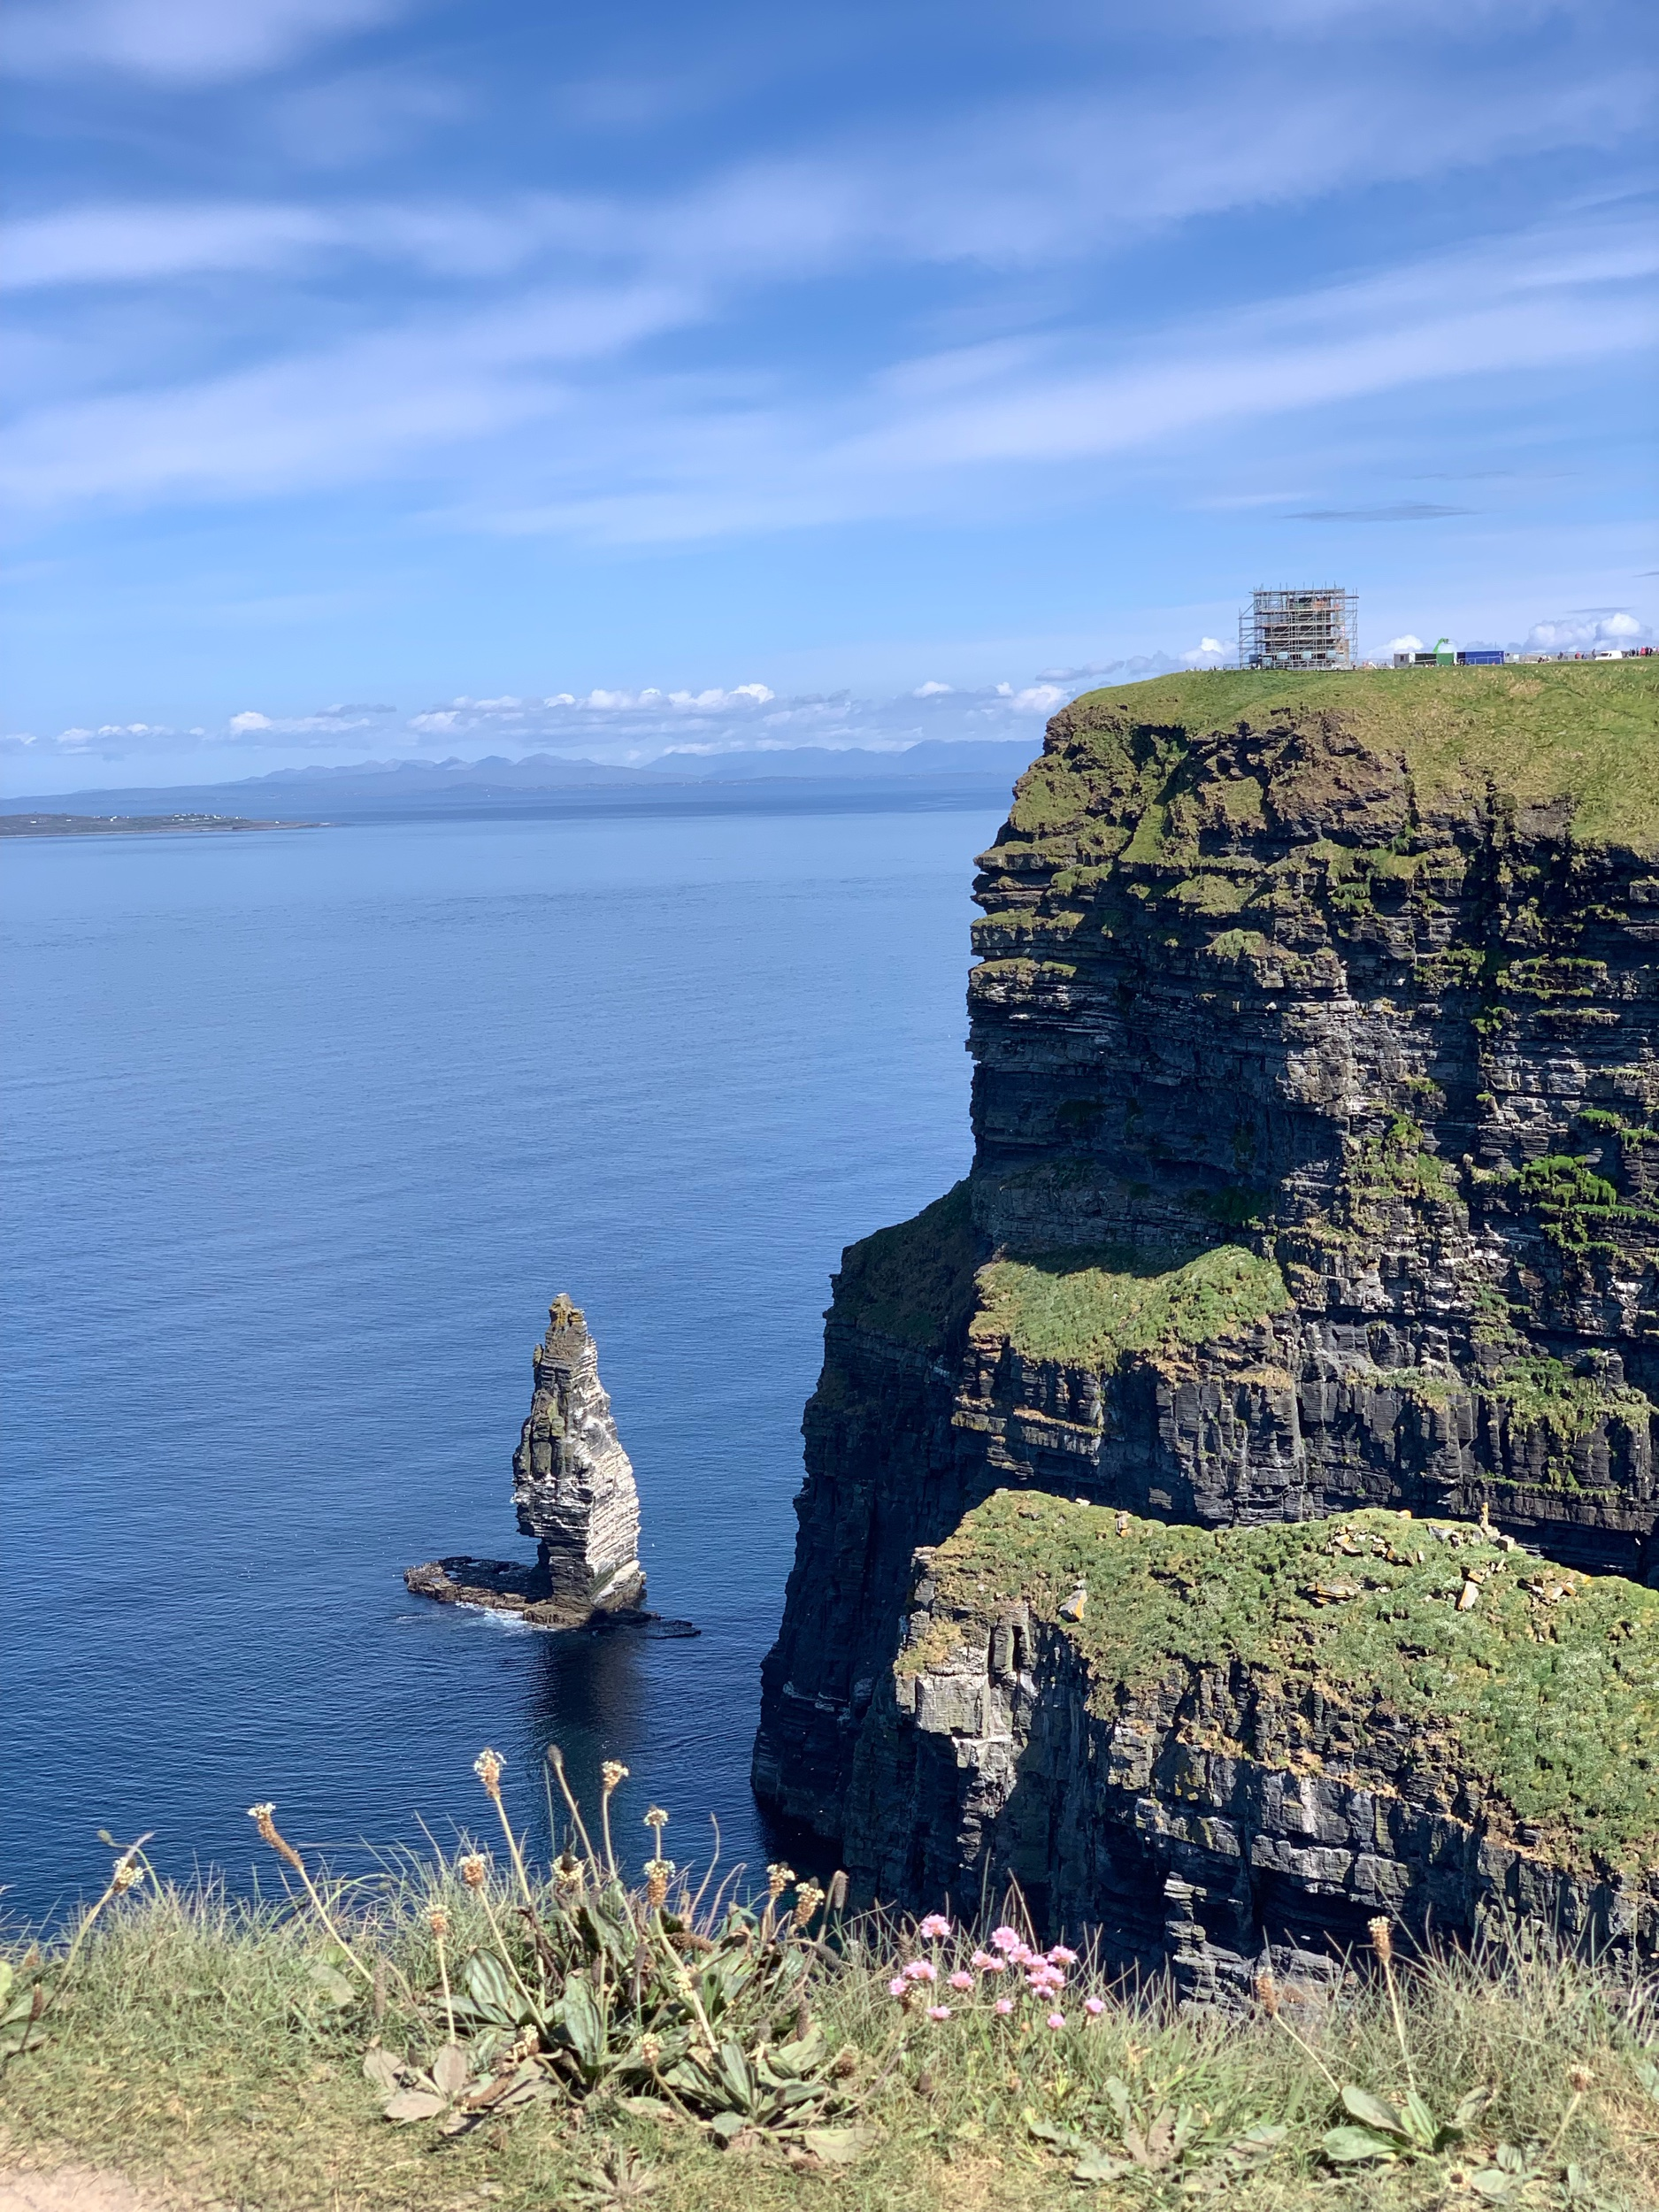 May 24, 2019 - Cliffs of Moher, located in the southwestern edge of the Burren region, County Clare, Ireland. No edits.